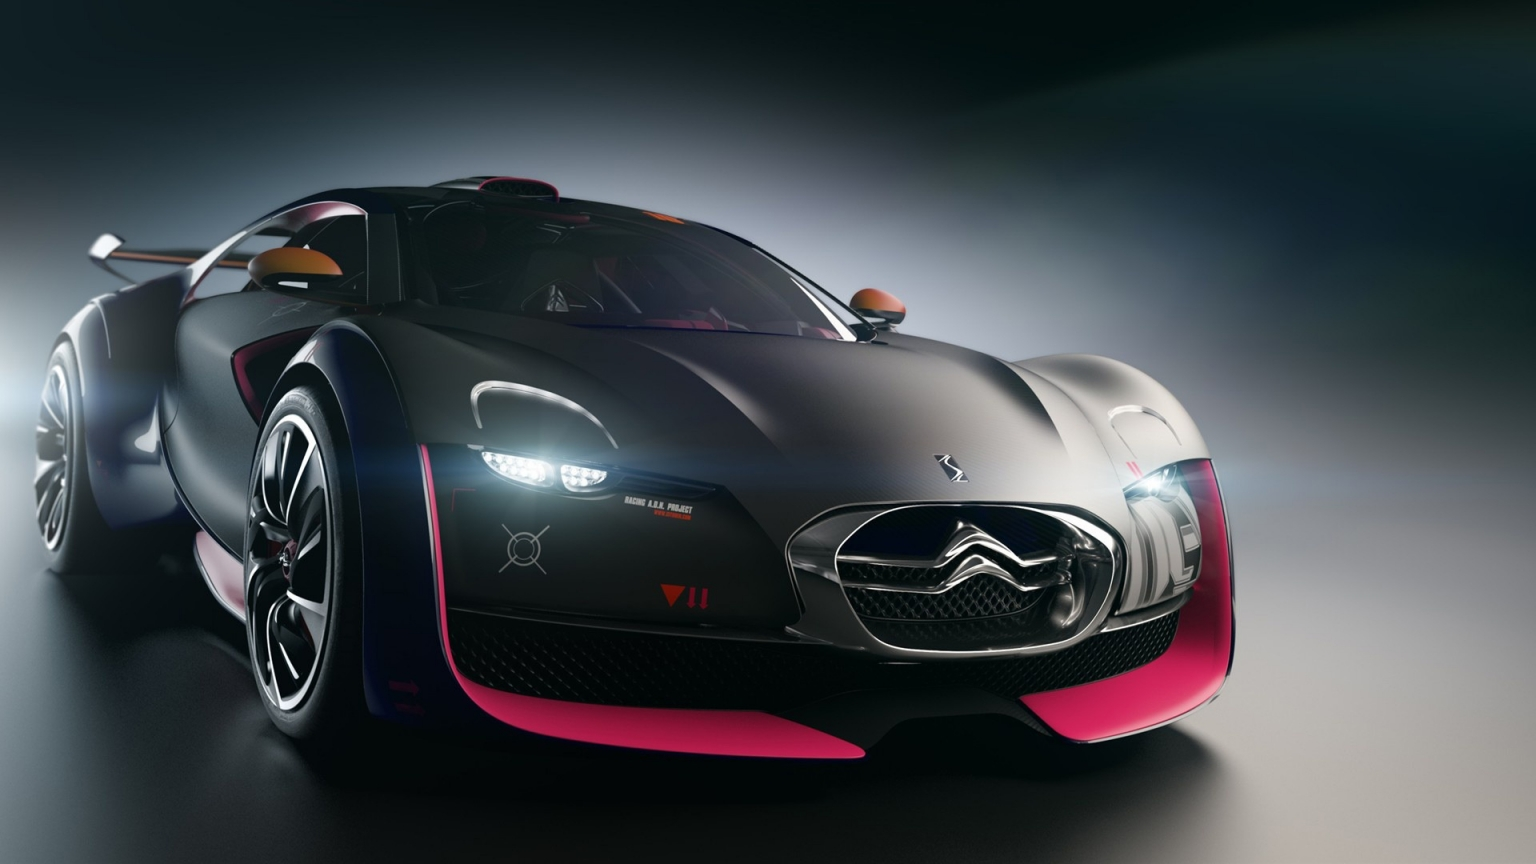 Citroen Survolt Concept for 1536 x 864 HDTV resolution